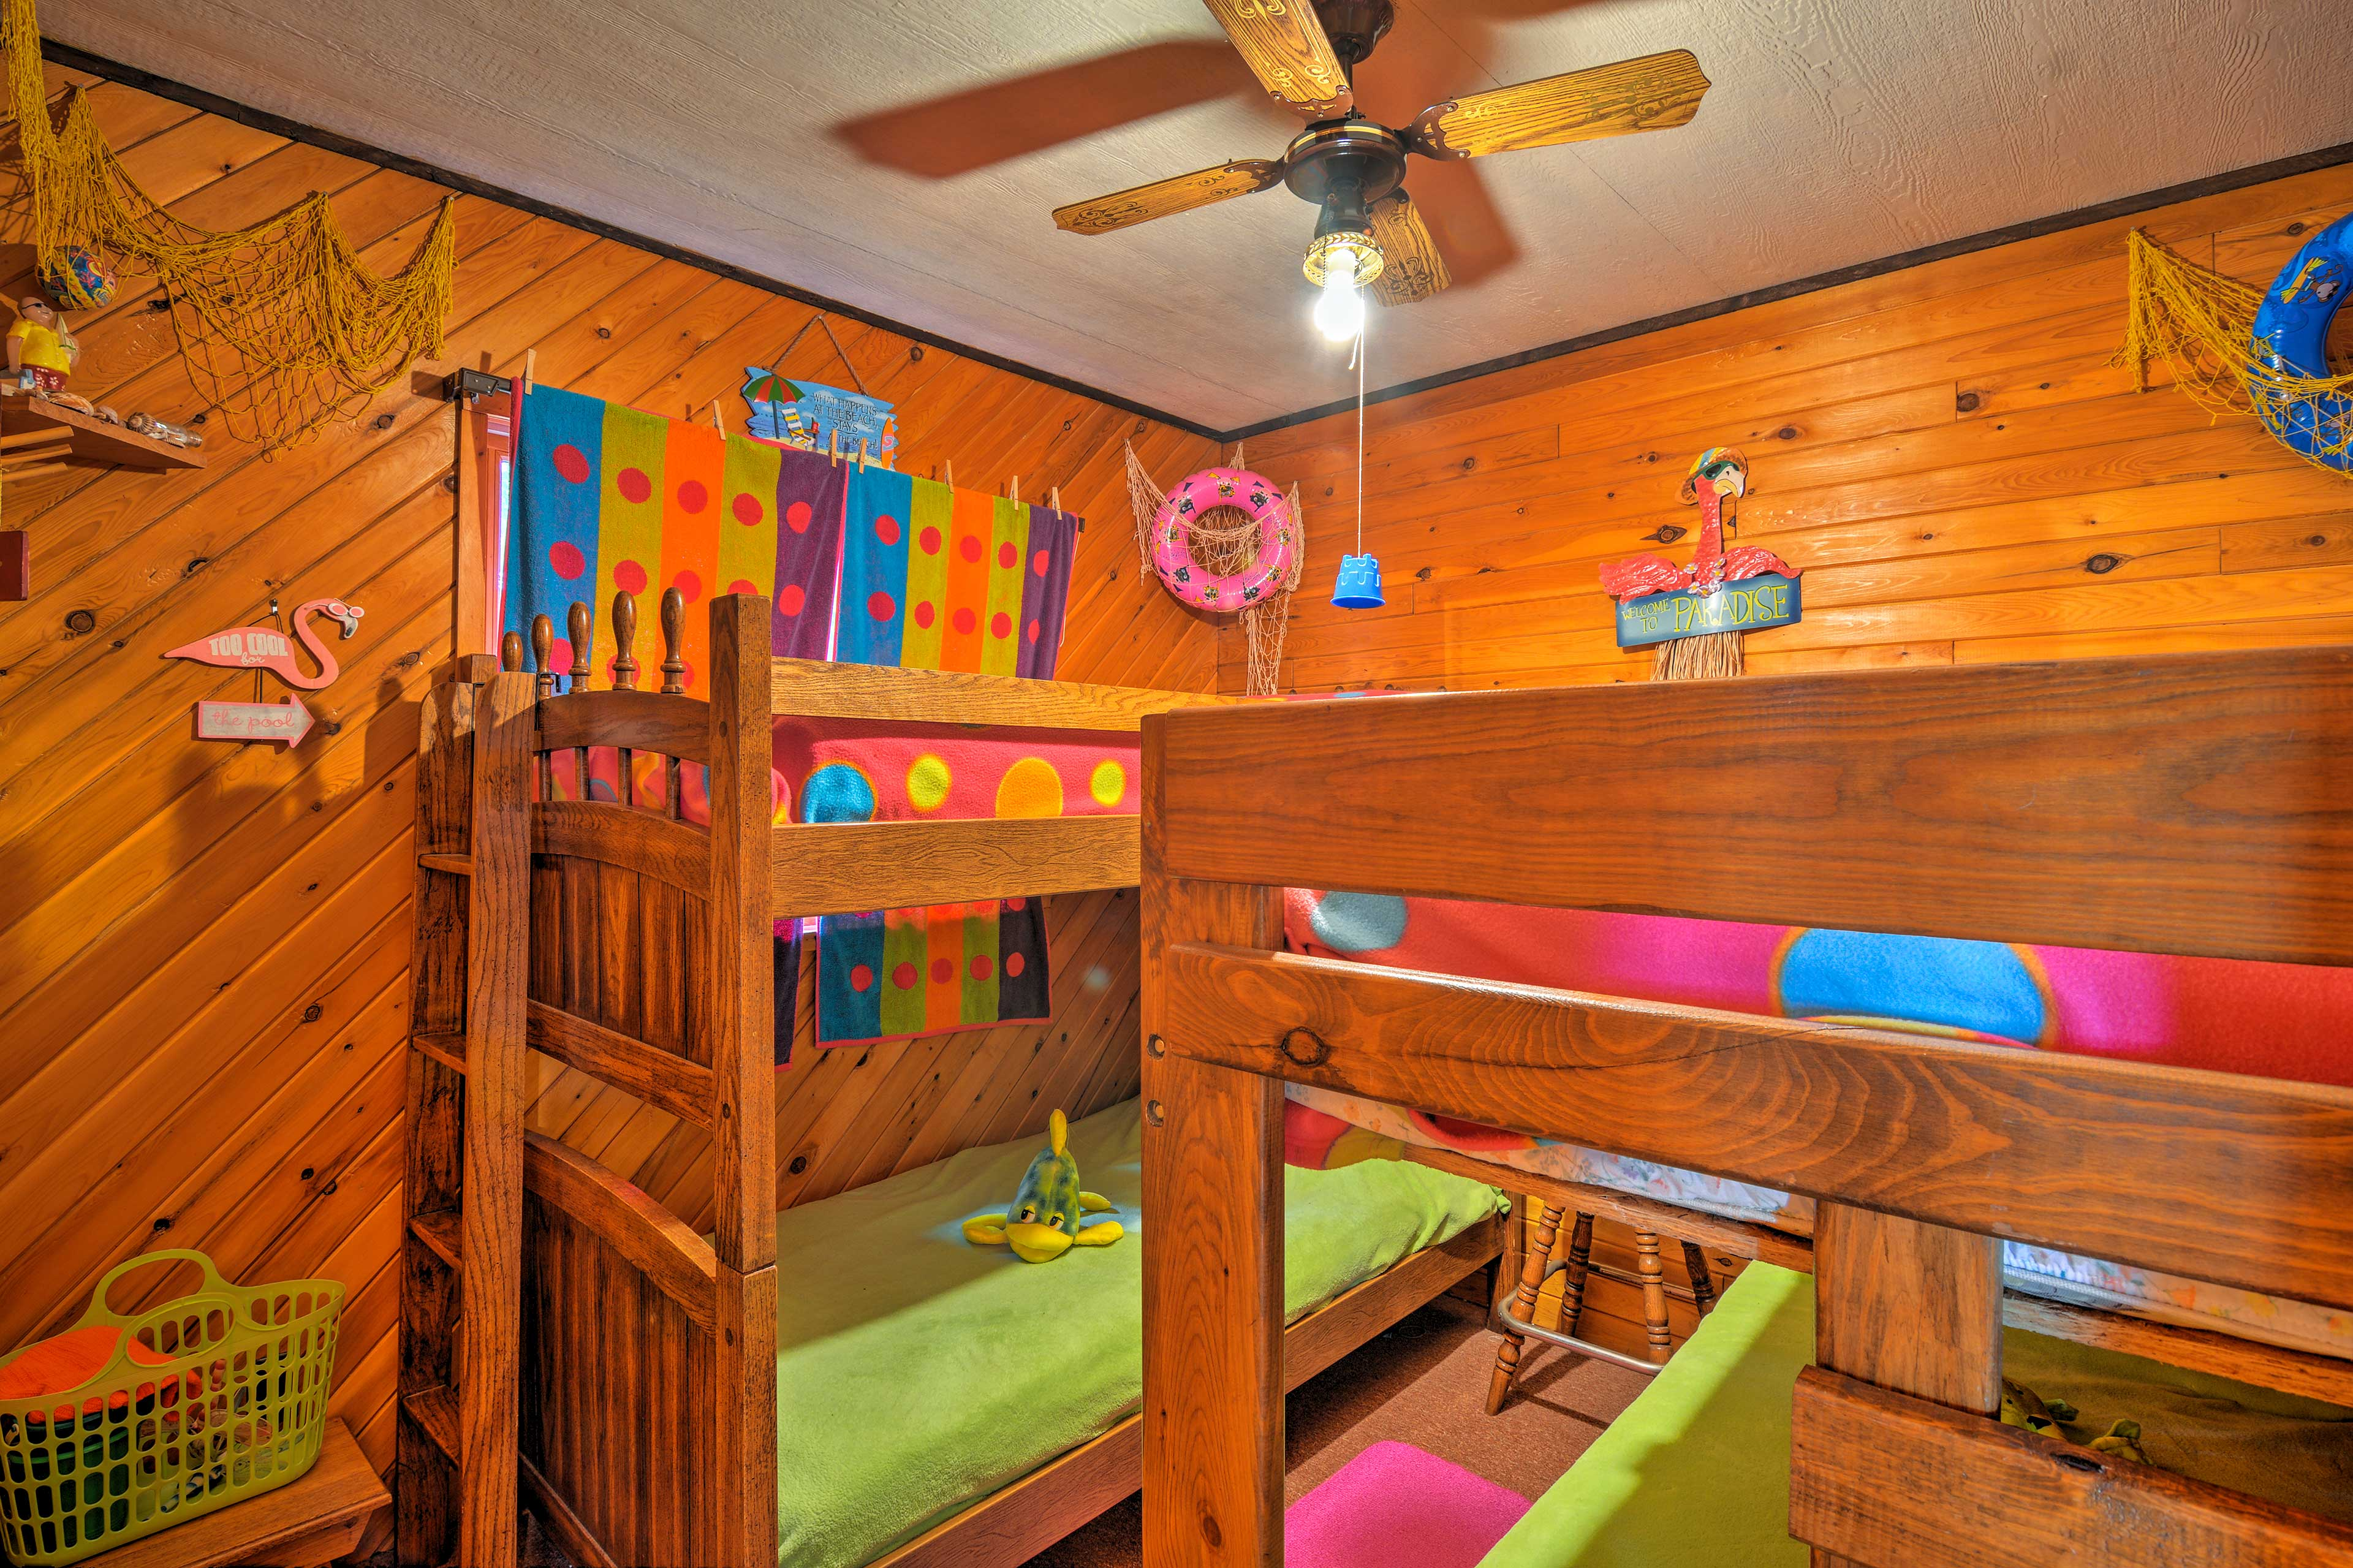 Vibrant decorations fill the second bedroom.